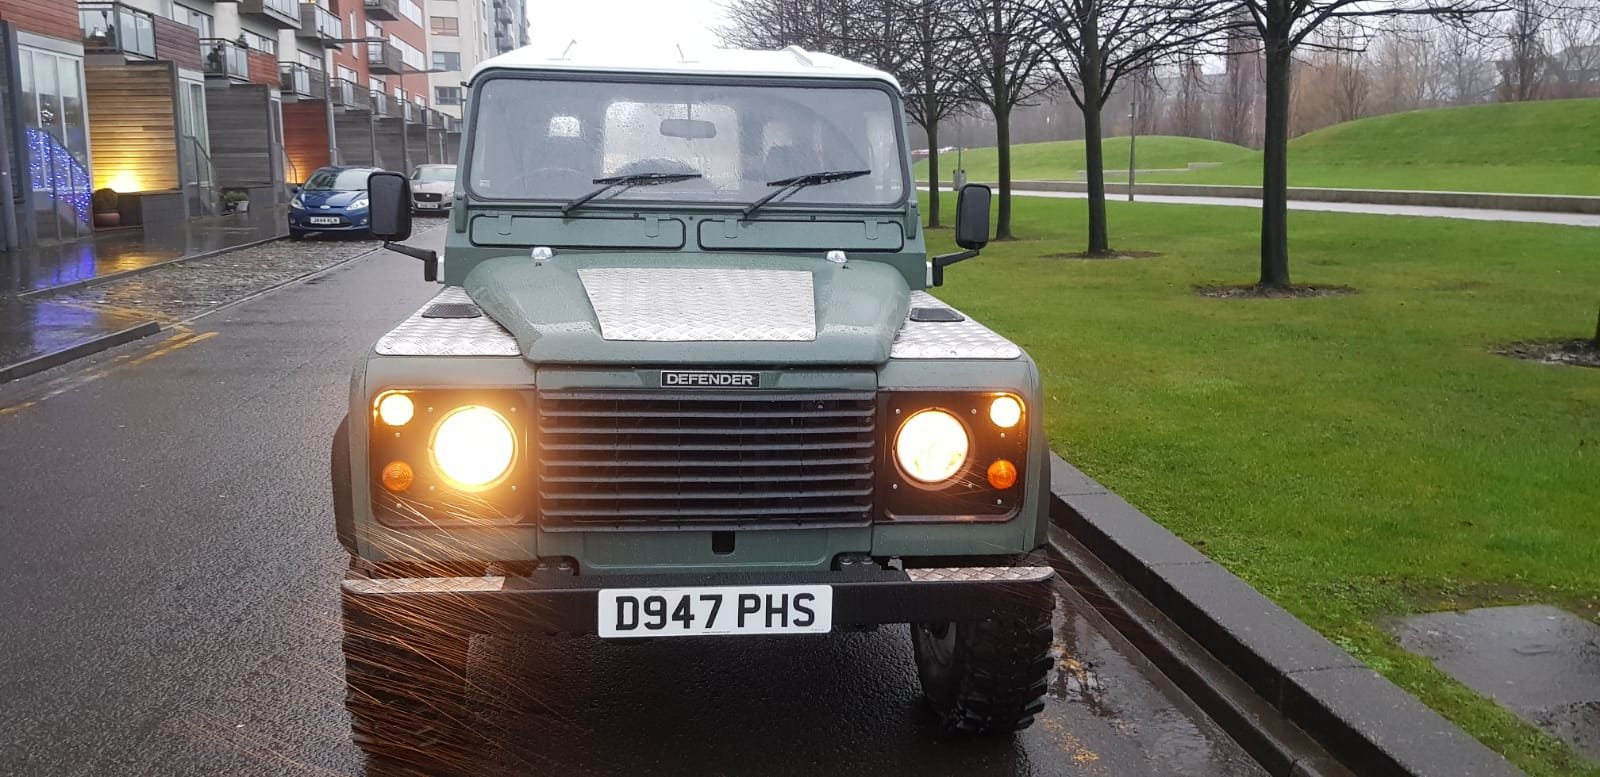 1986 Fully refurbished110 landrover For Sale (picture 3 of 12)